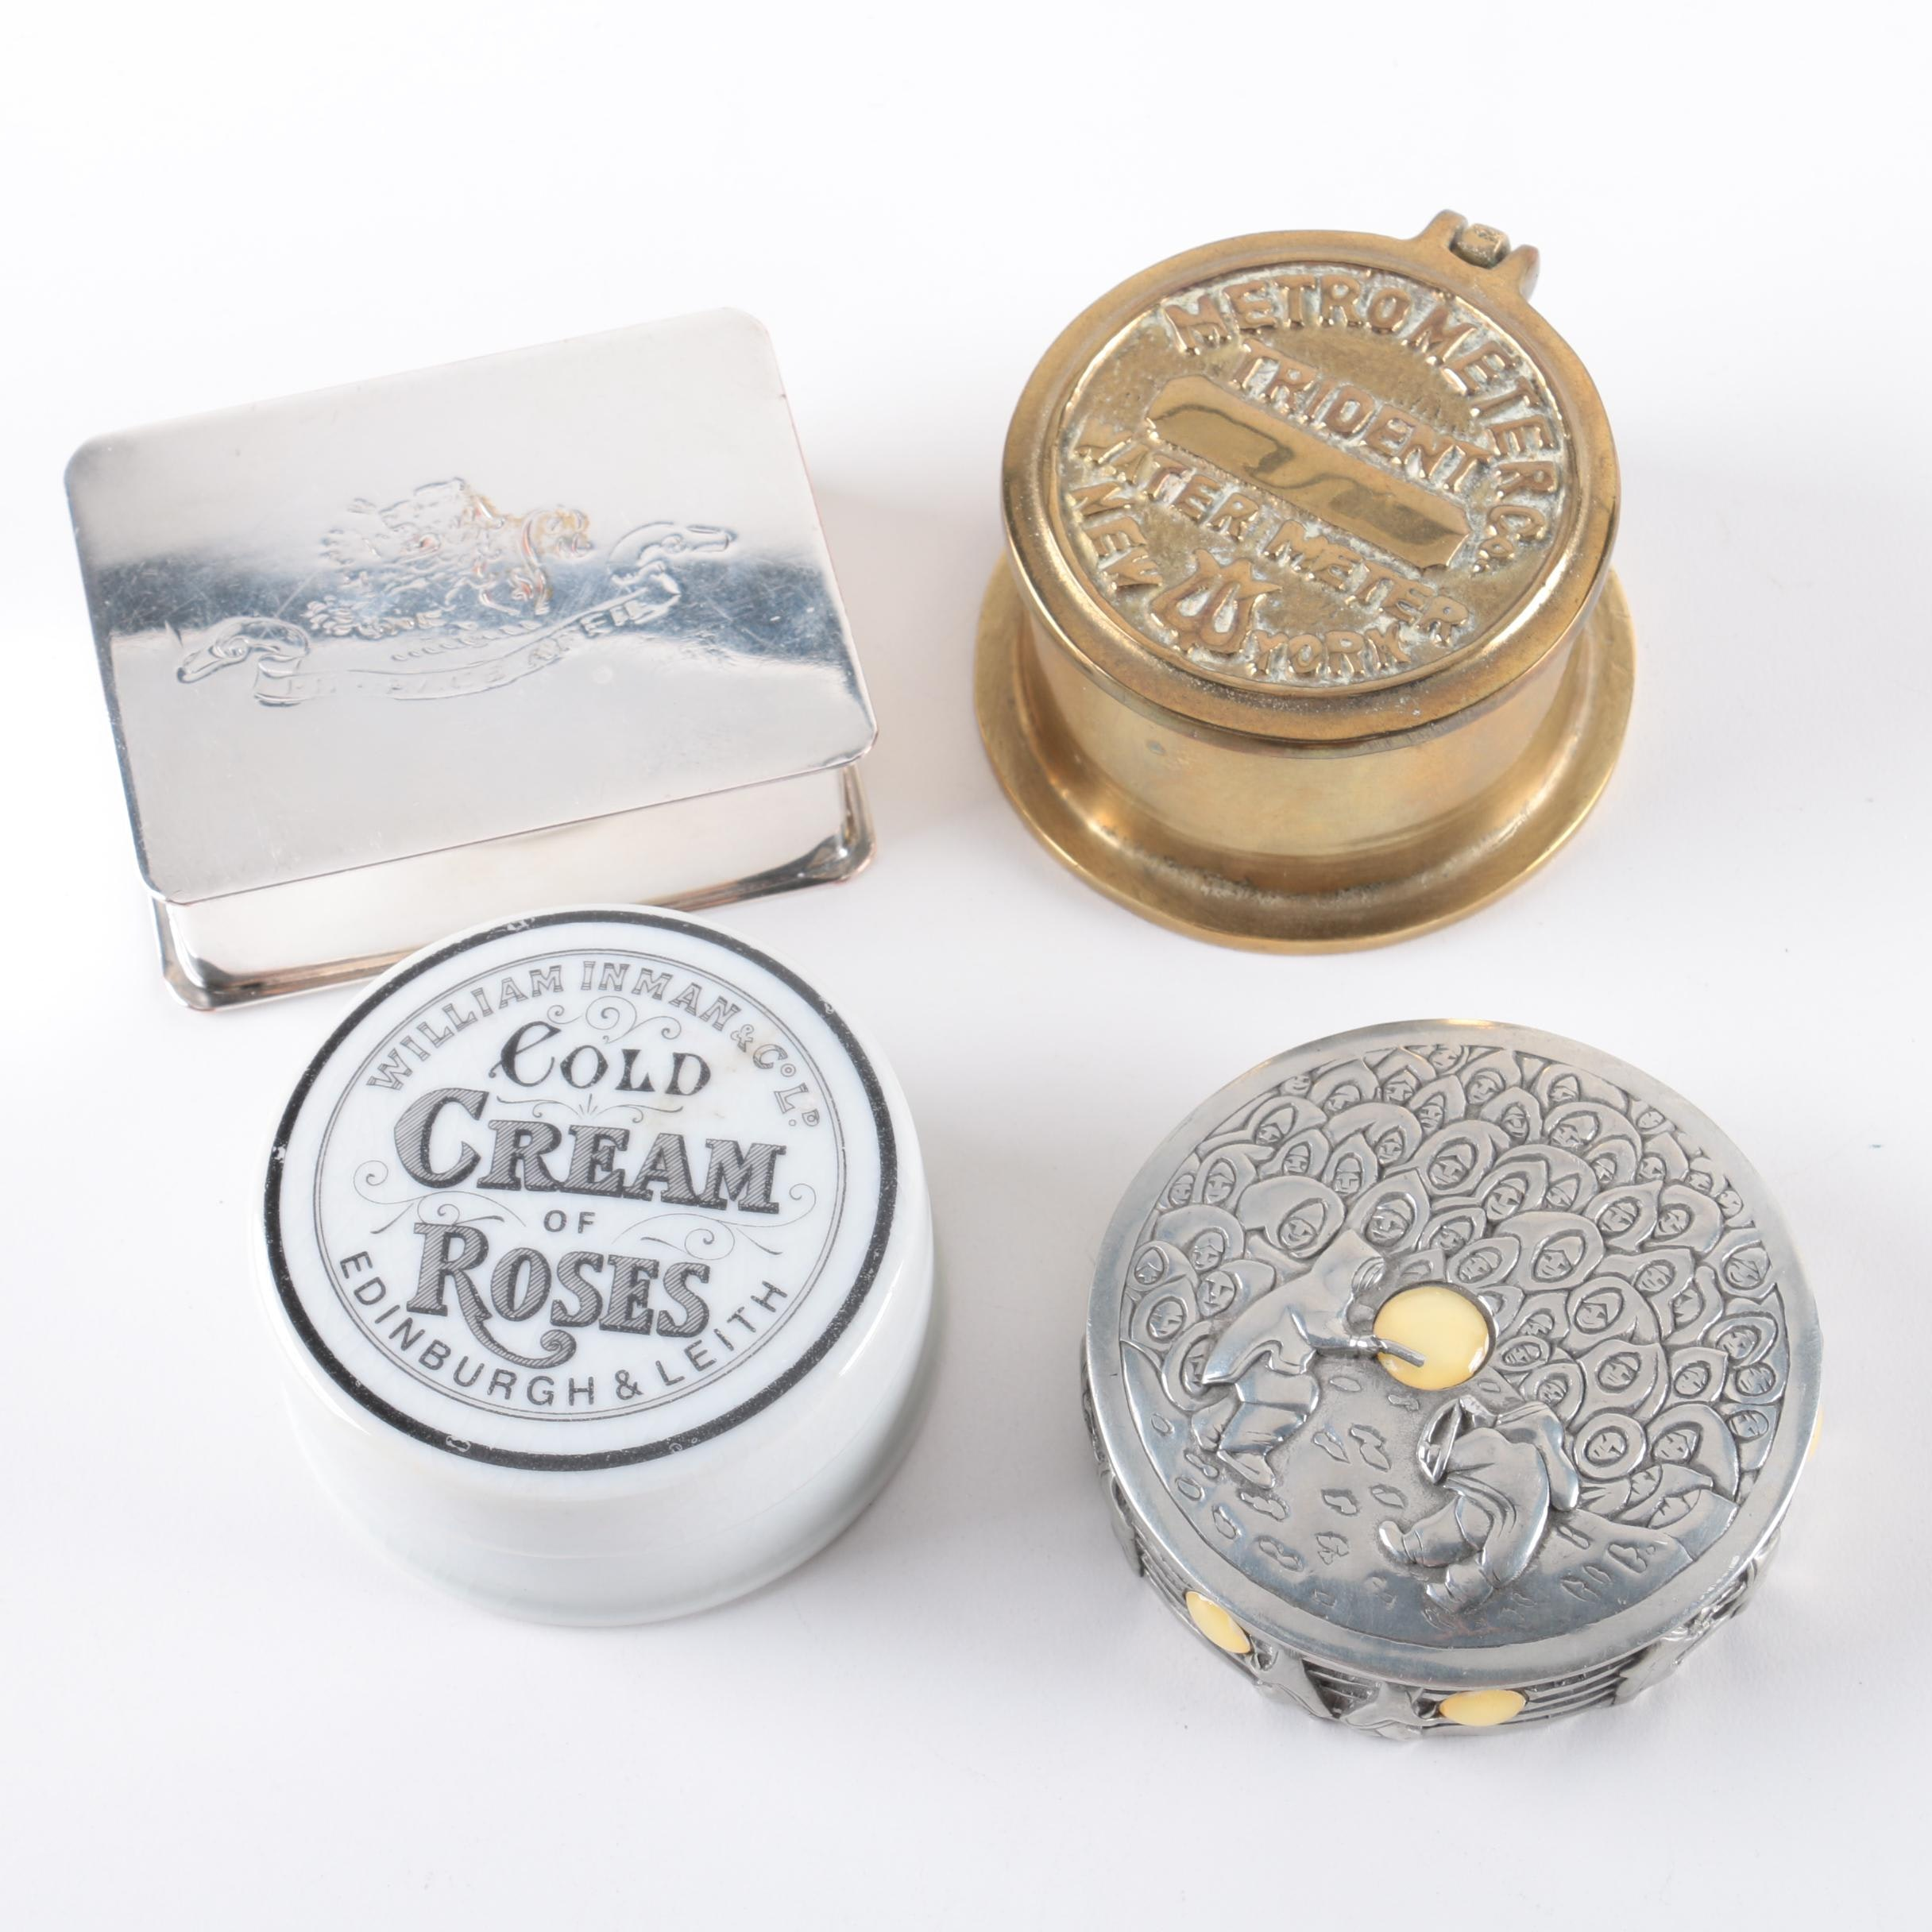 Containers and Trinket Boxes Including Cold Cream Jar